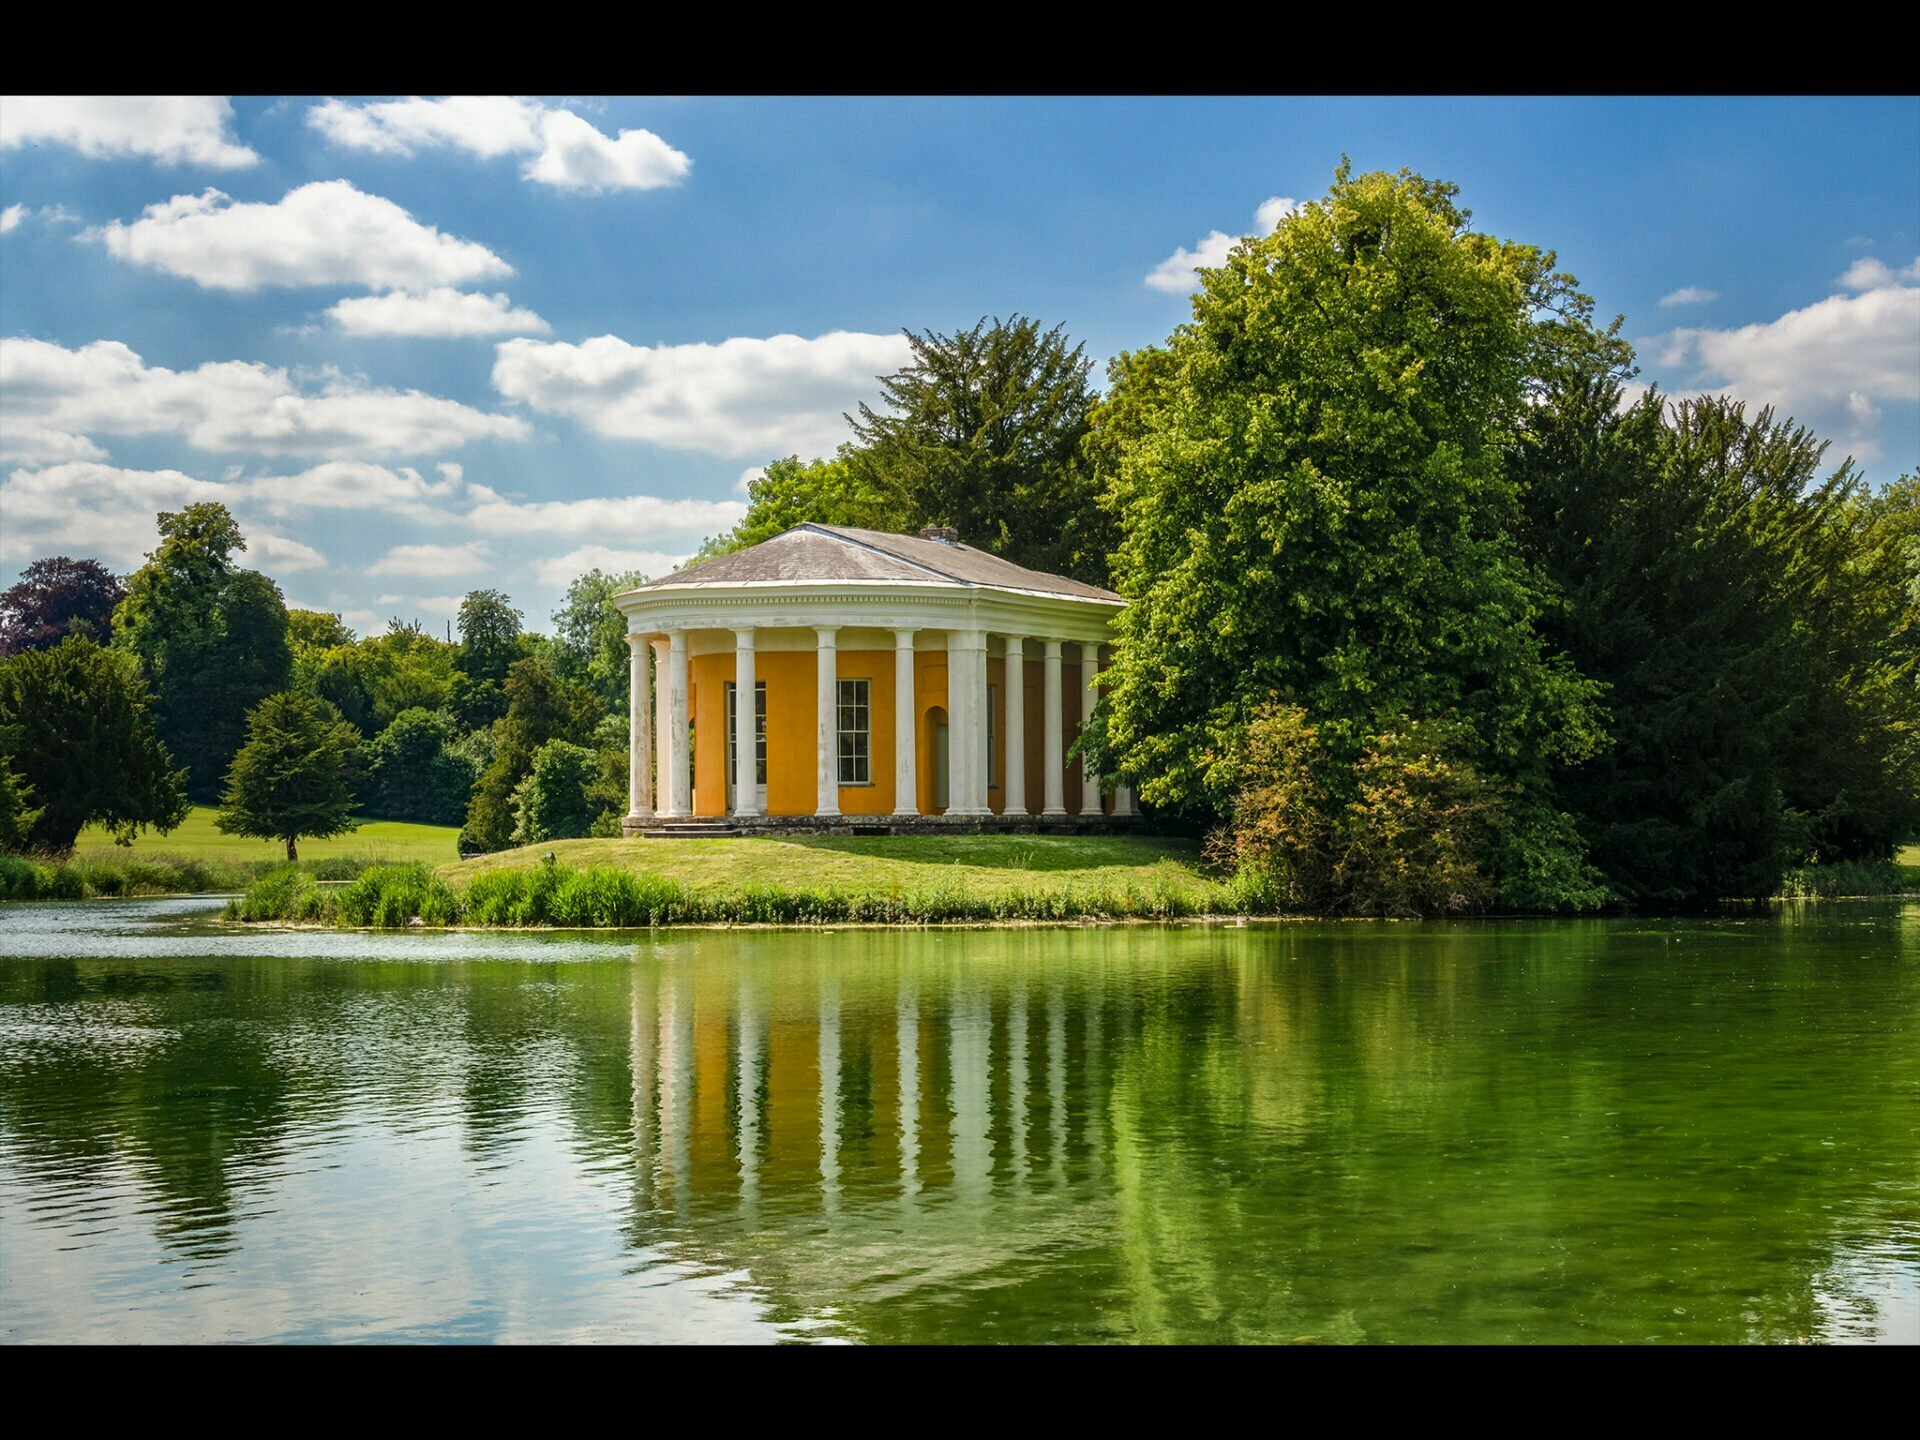 A classical building in the middle of a lake at West Wycombe